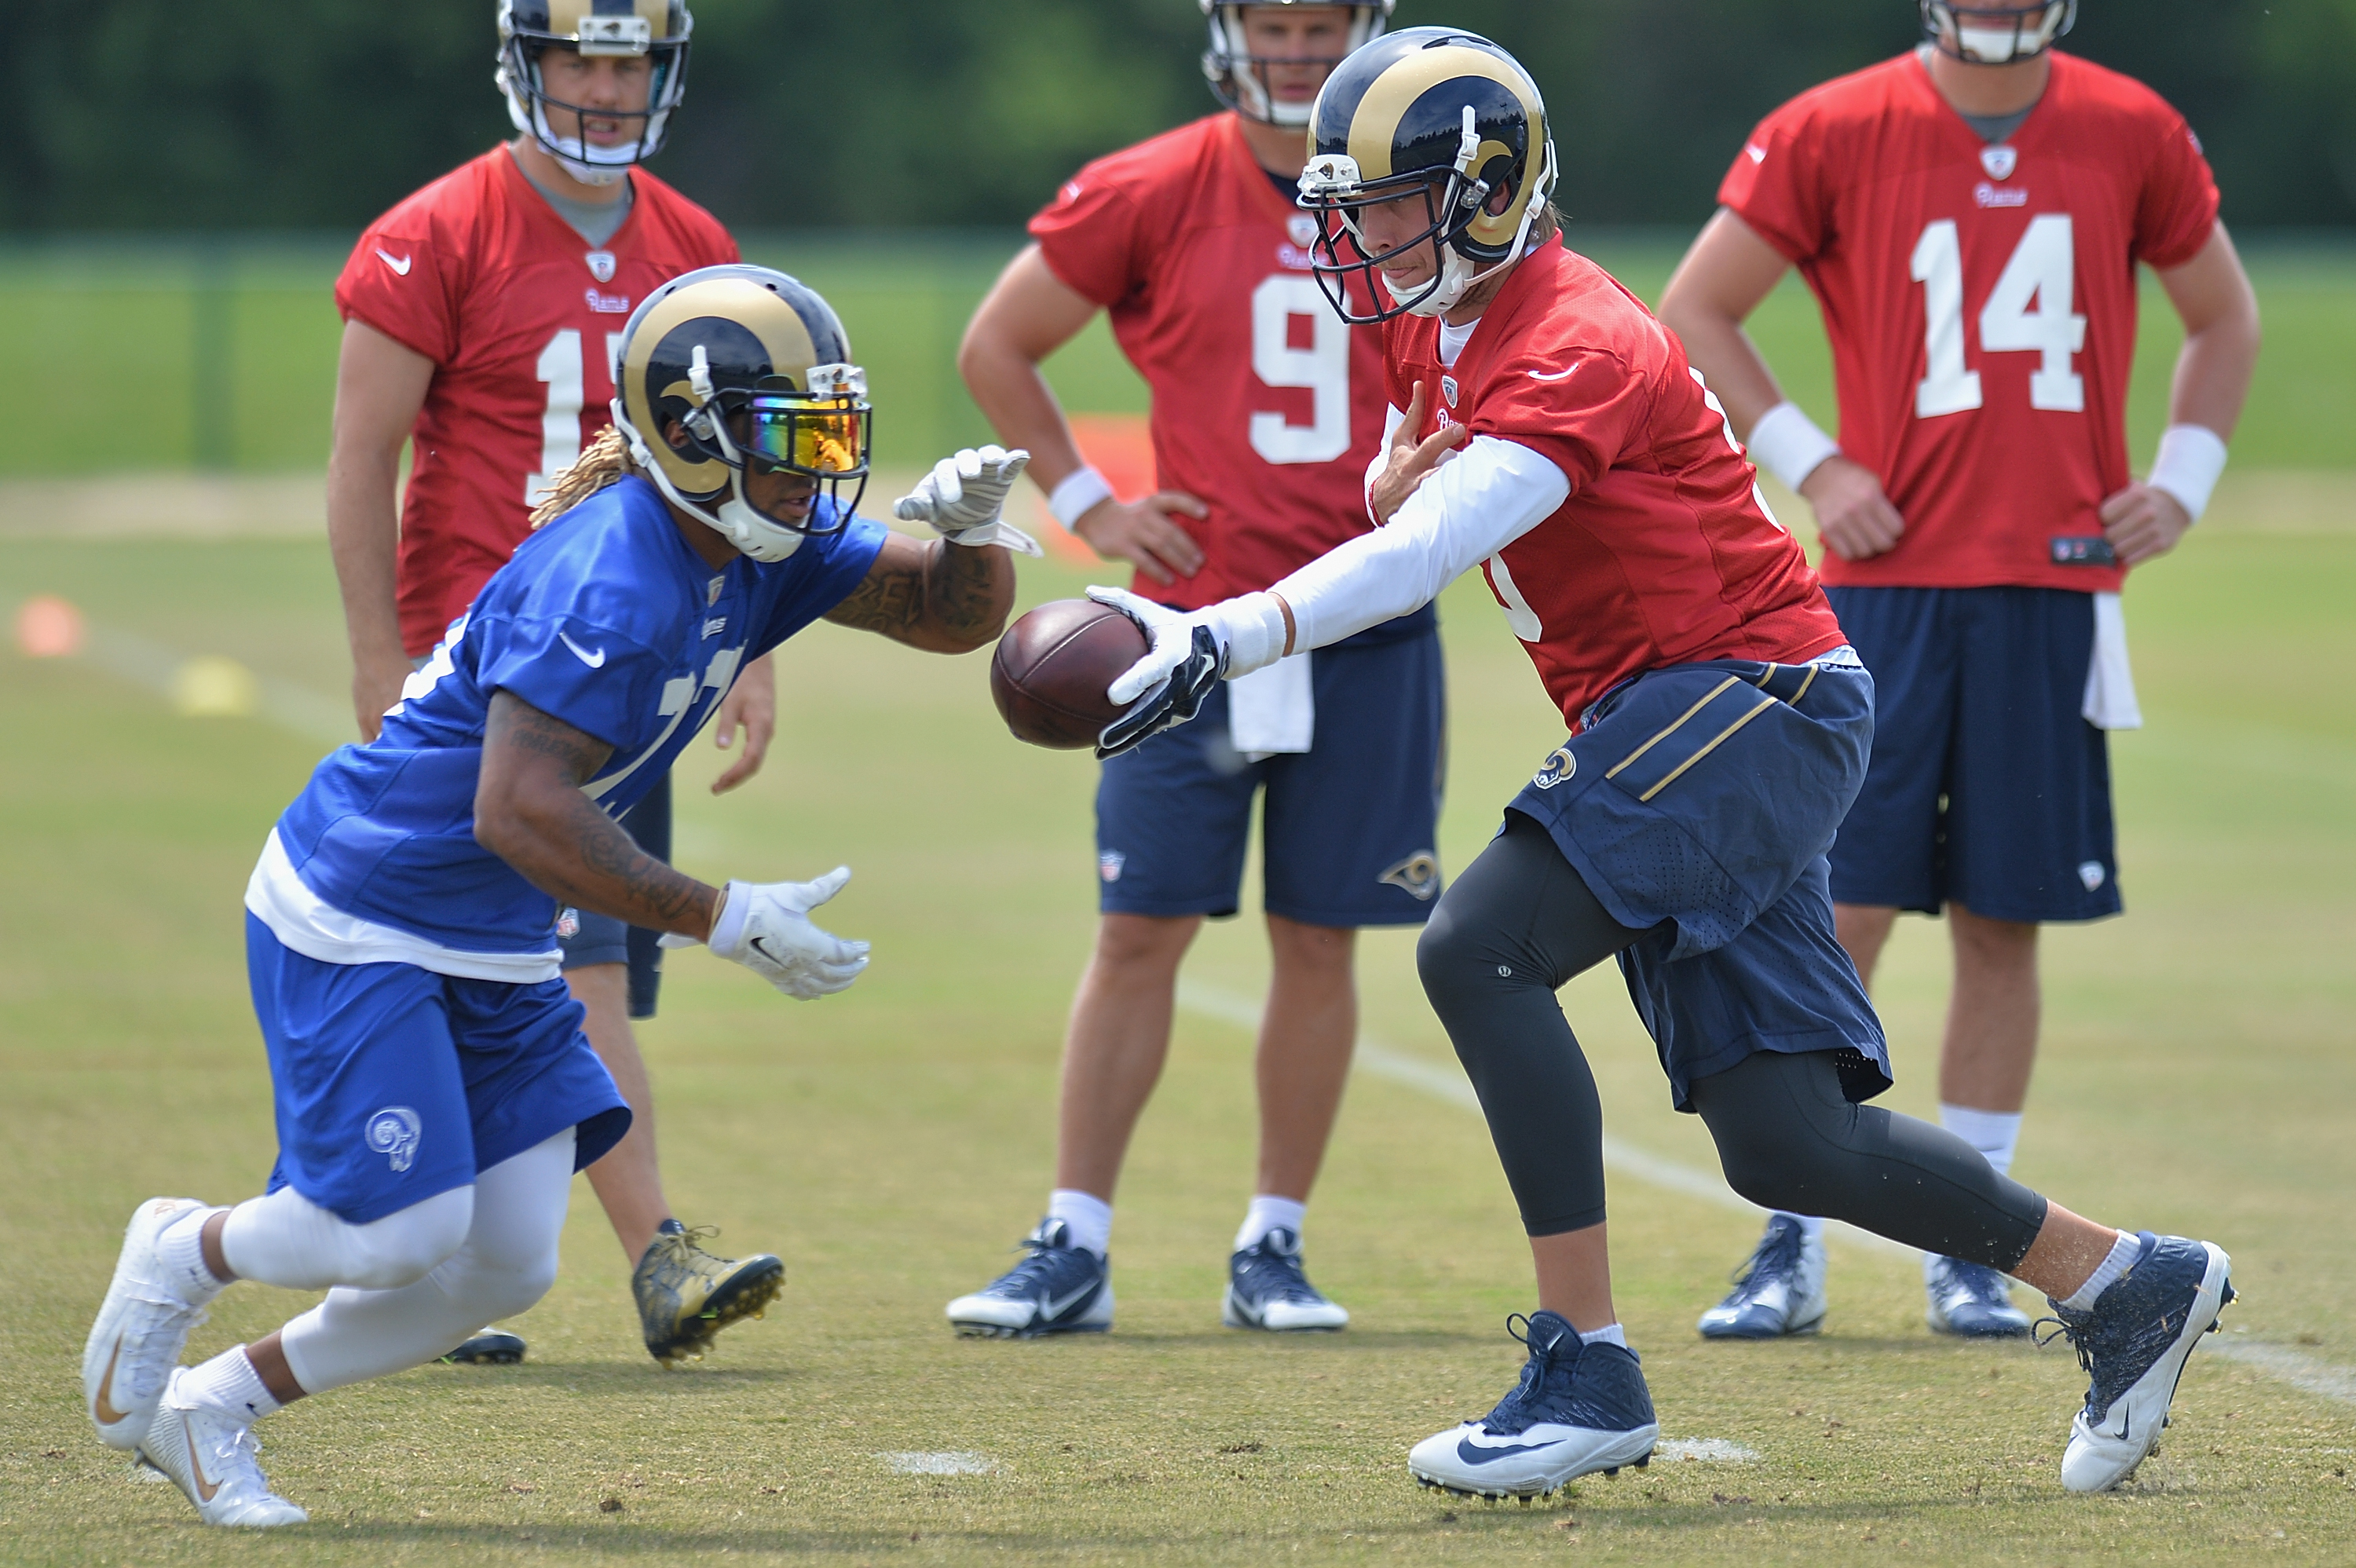 St. Louis Rams quarterback Nick Foles, right, hands the ball off to running back Tre Mason, left, during an NFL football organized team activity, Thursday, June 11, 2015, in St. Louis. (AP Photo/Michael Thomas)